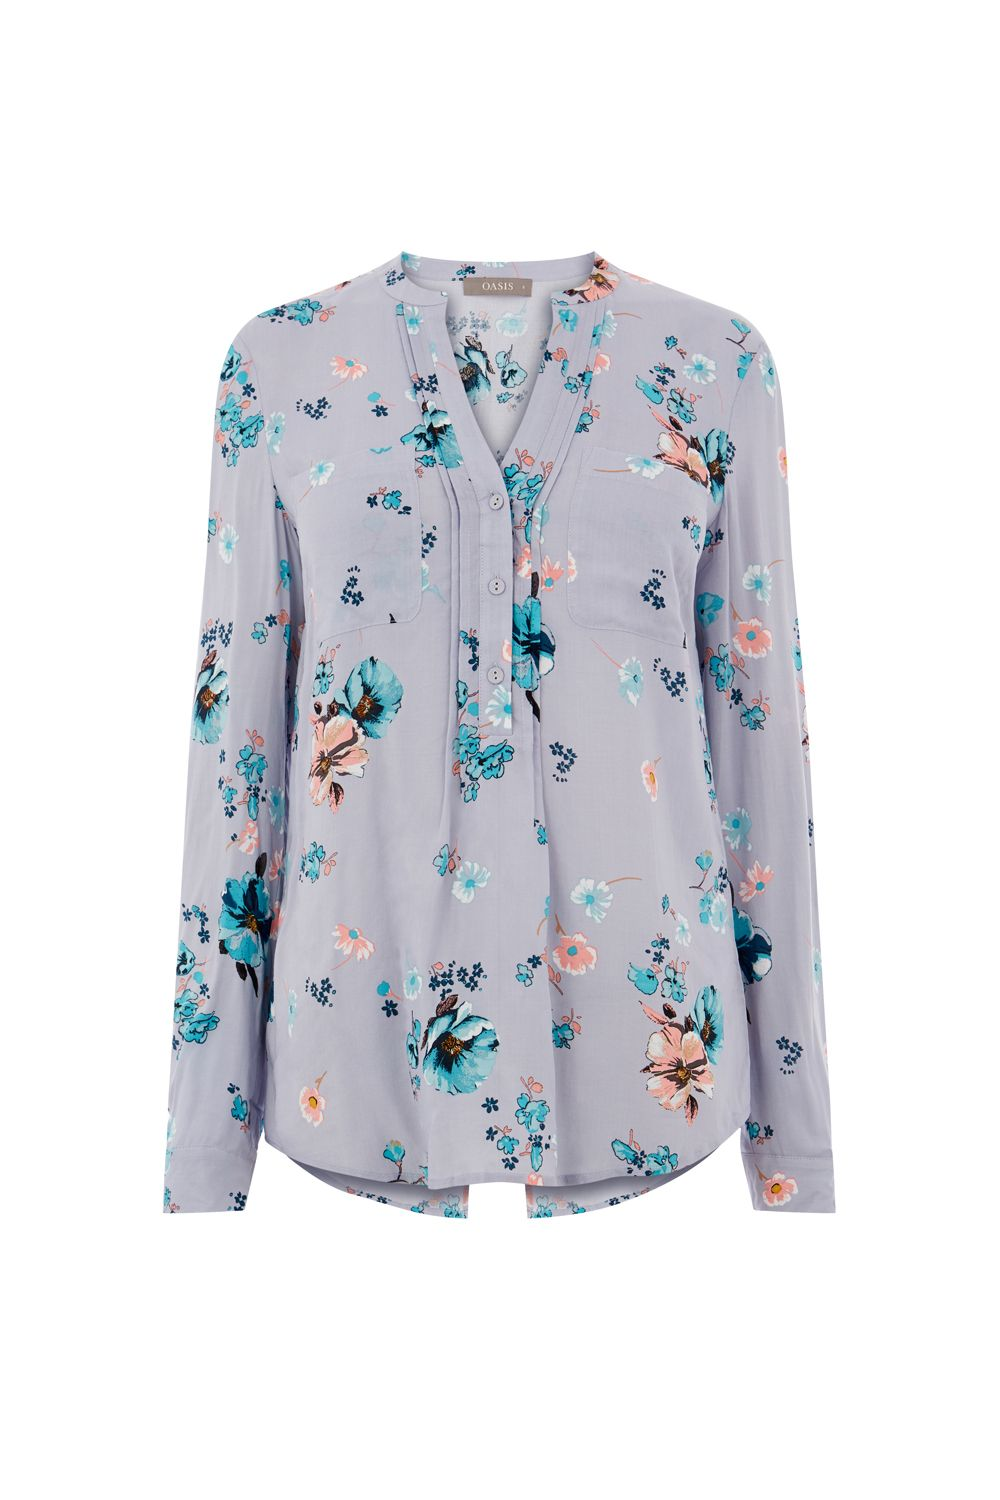 Oasis Rosetti Shirt, Multi-Coloured